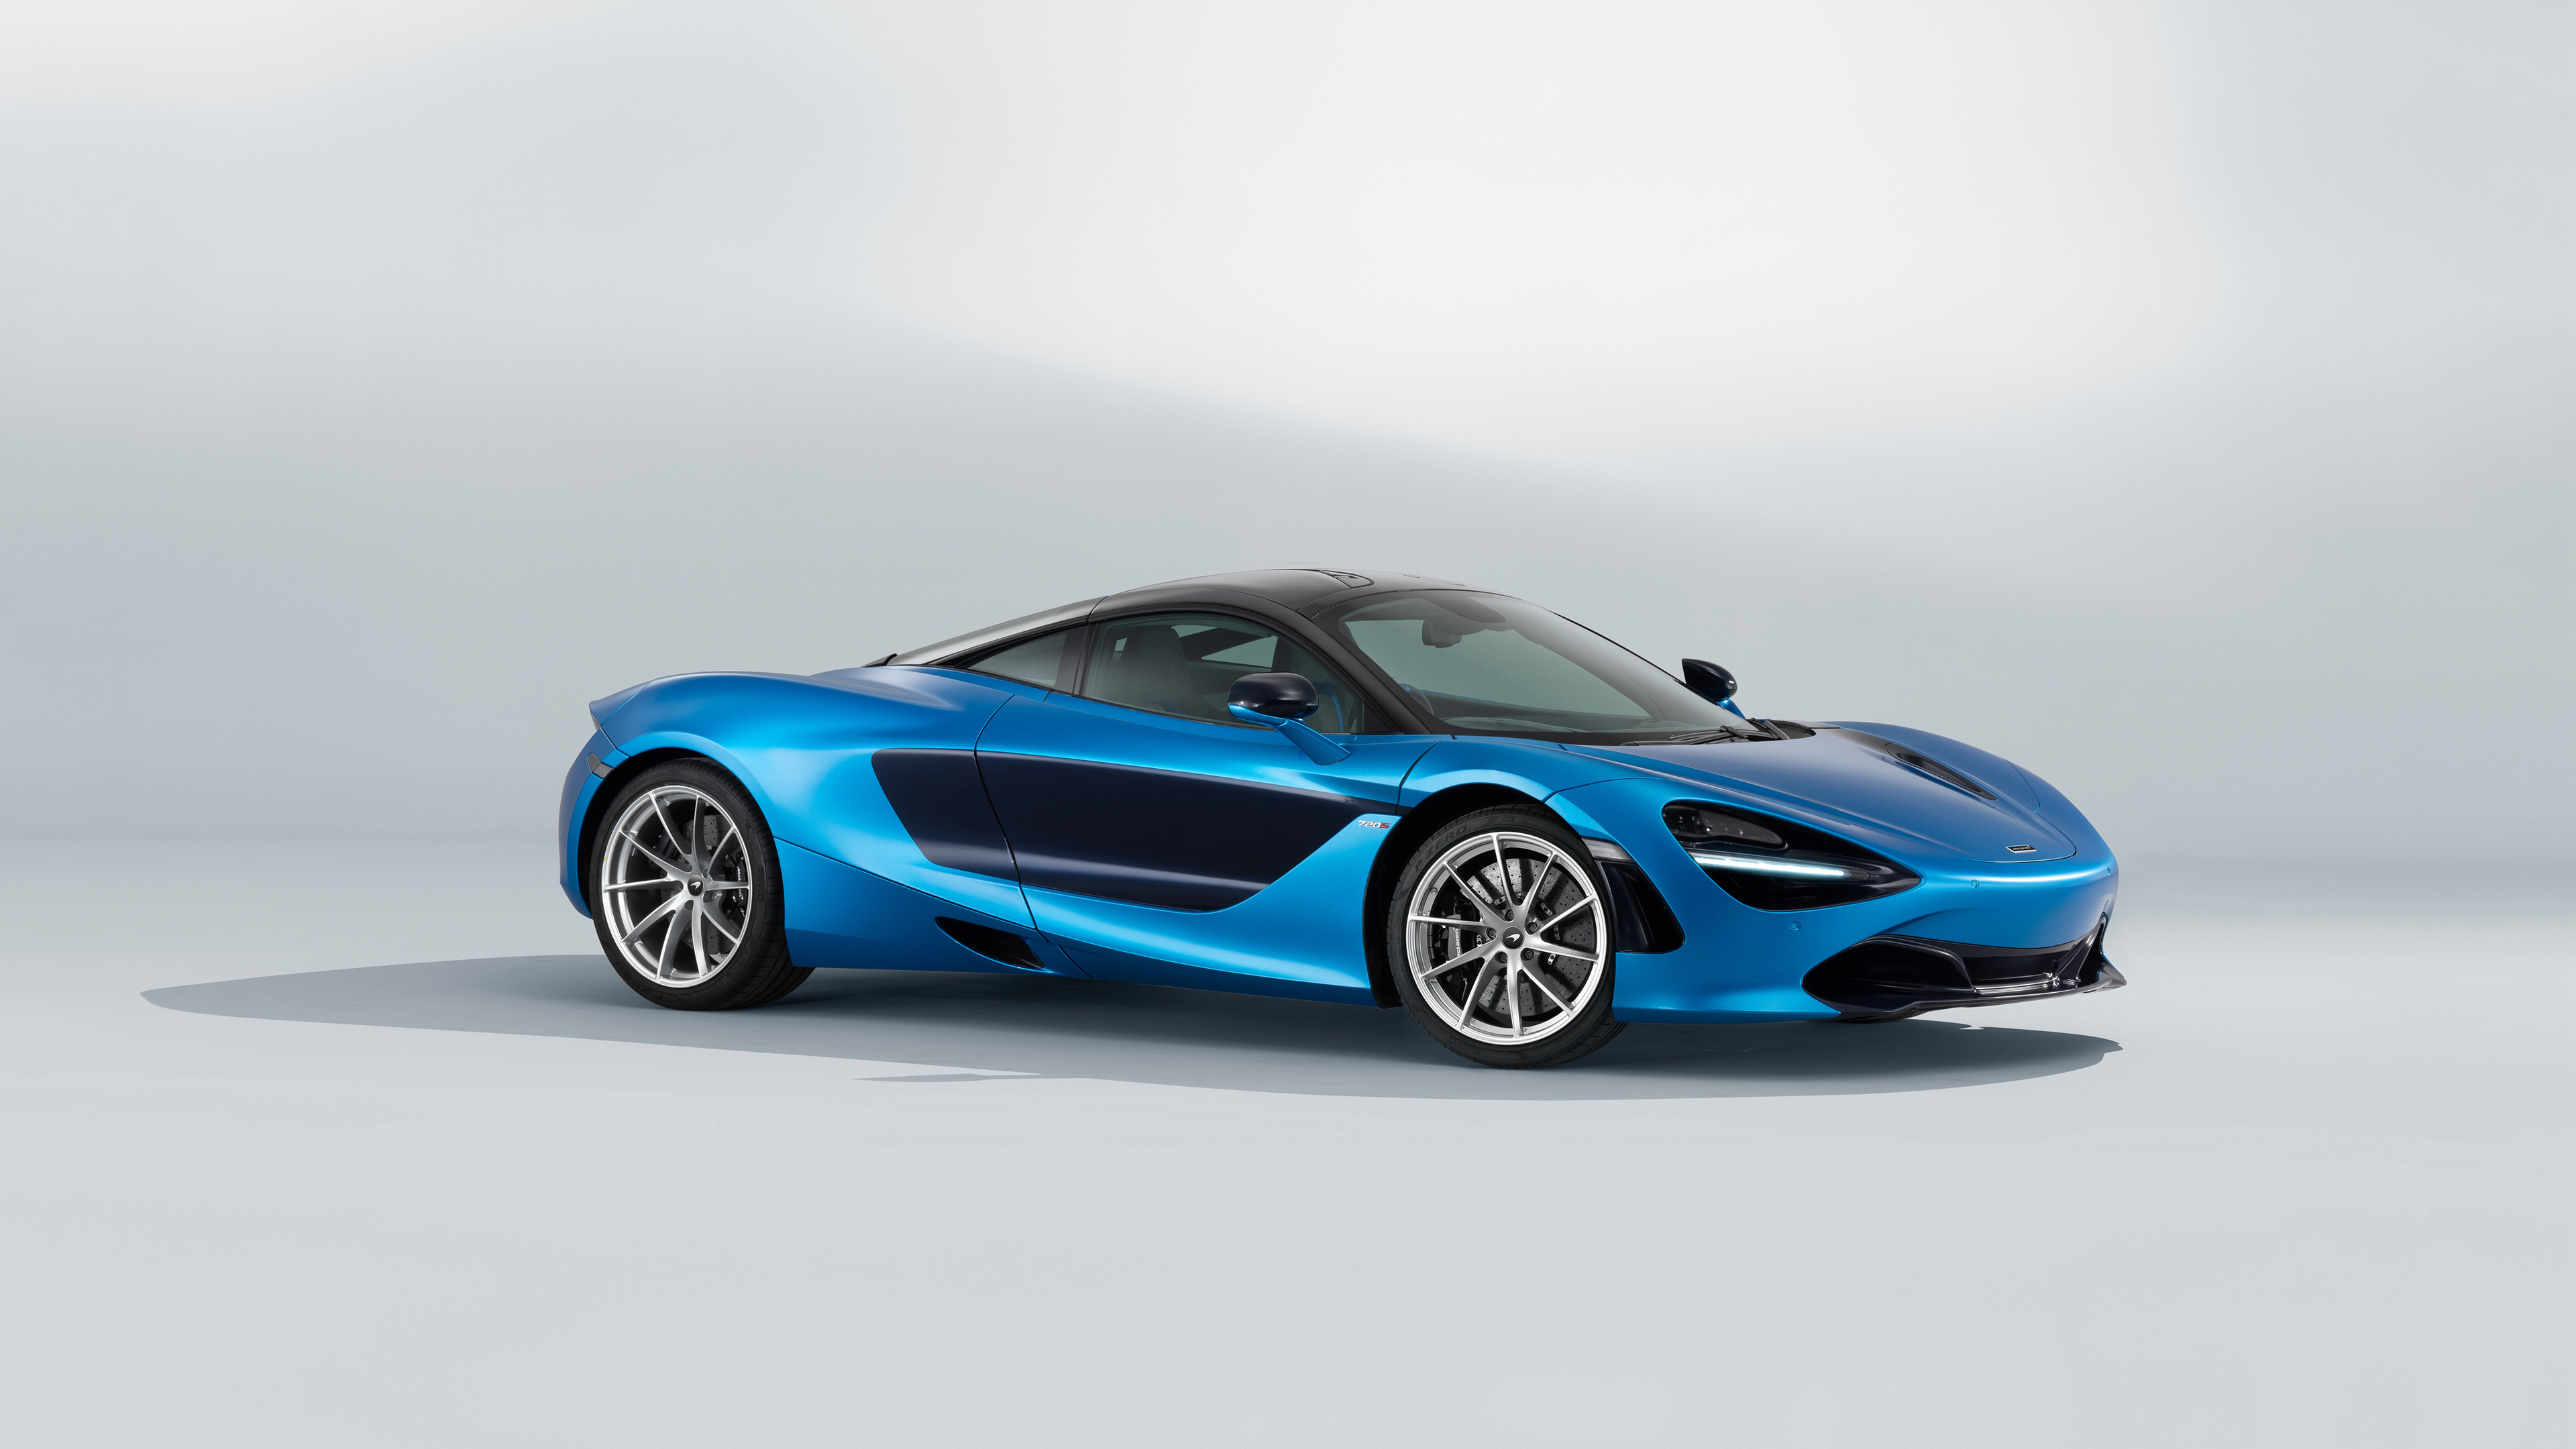 mclaren mso 720s pacific theme 2018 1539113862 - McLaren MSO 720S Pacific Theme 2018 - mclaren wallpapers, mclaren 720s wallpapers, hd-wallpapers, cars wallpapers, 4k-wallpapers, 2018 cars wallpapers